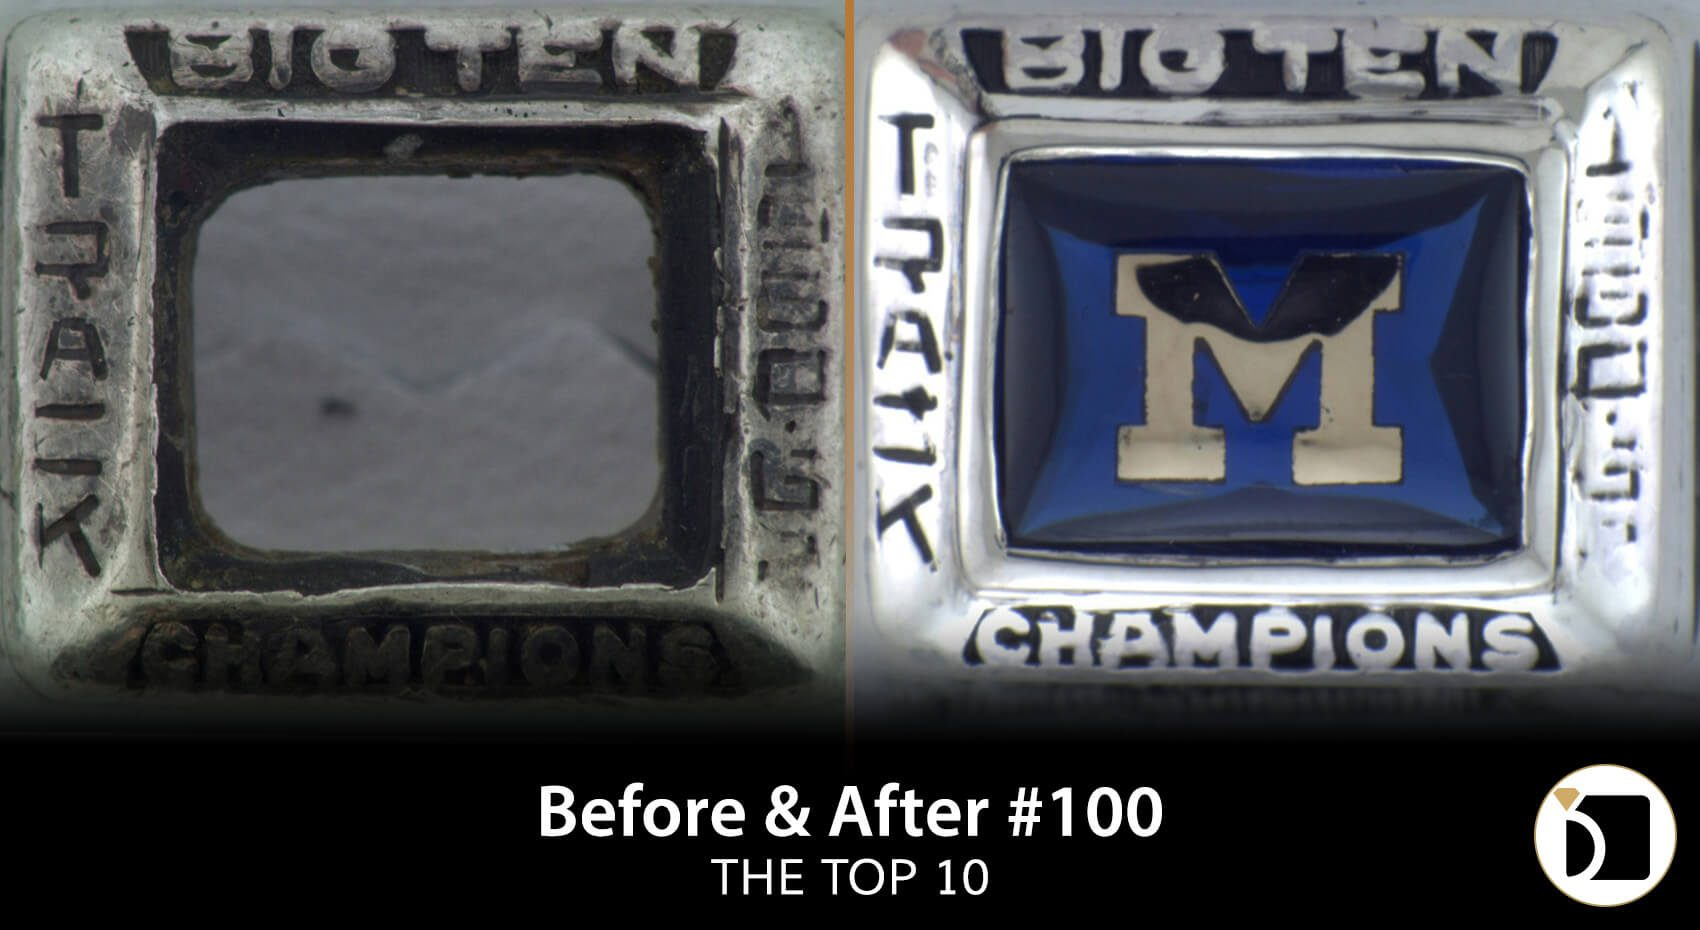 Before & After #100